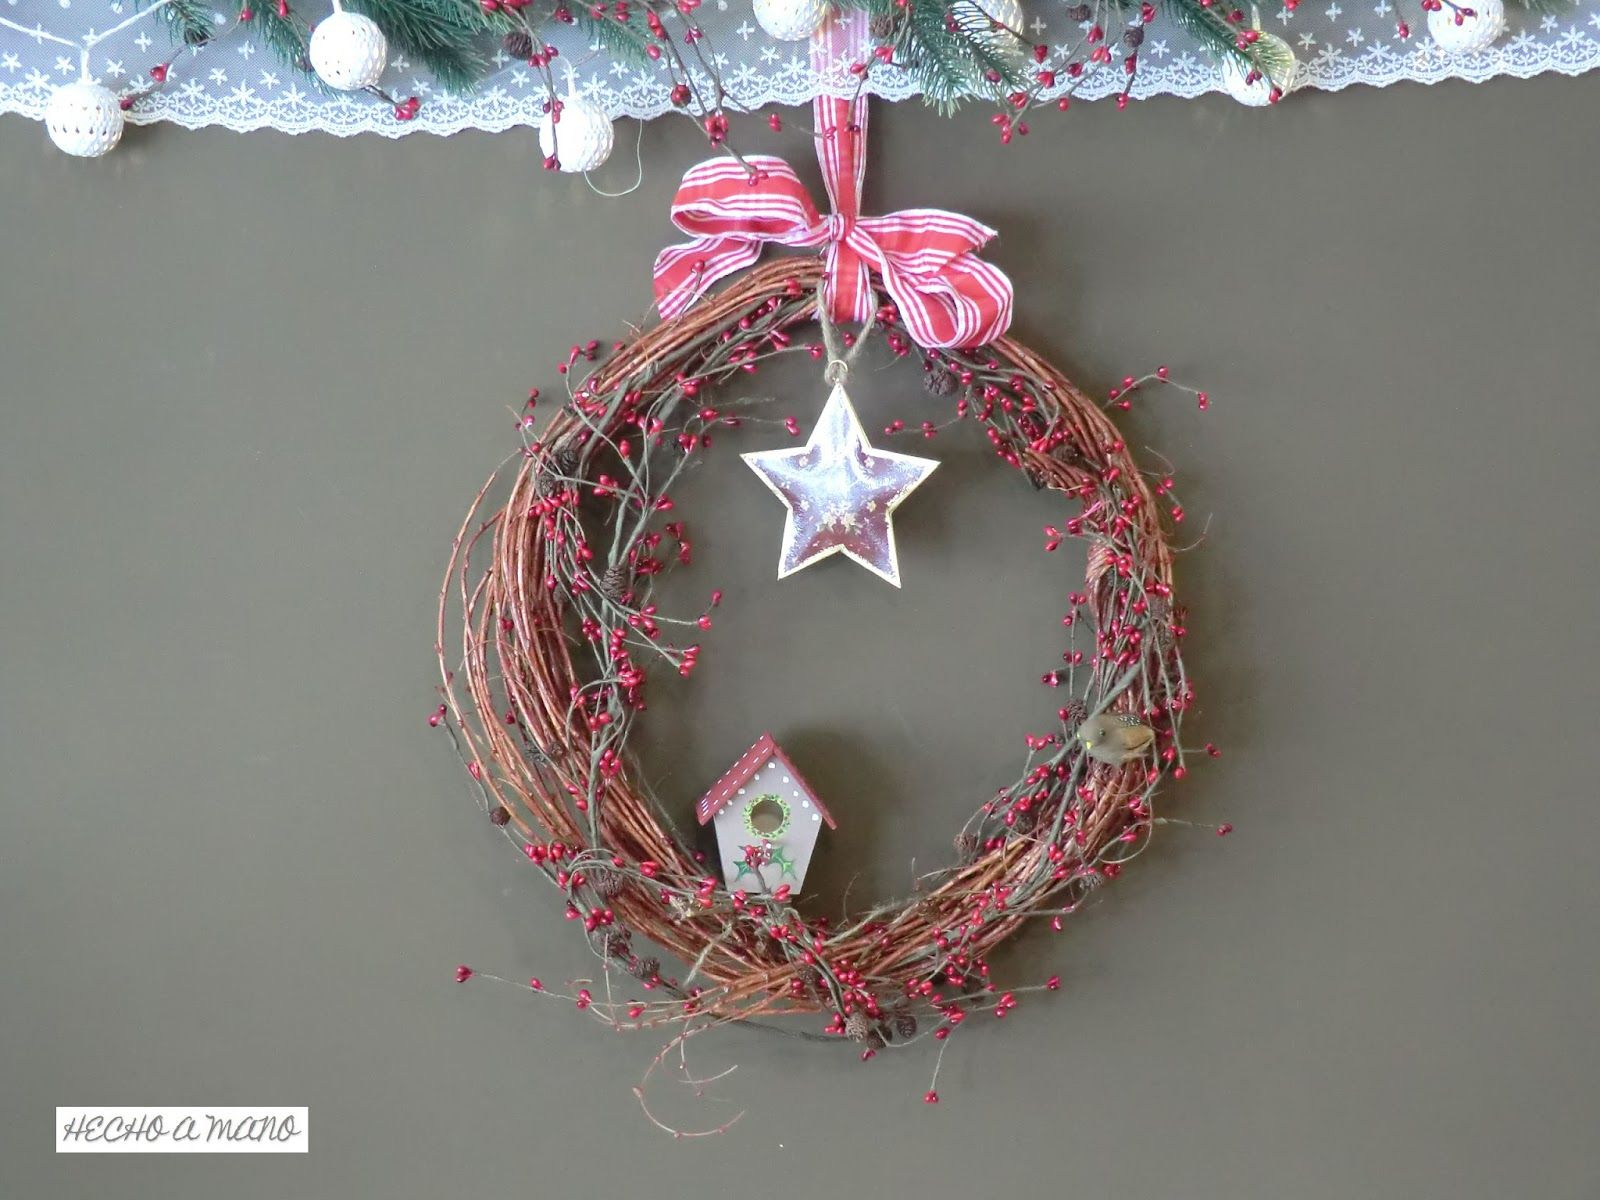 HECHO A MANO: CHRISTMAS TIME